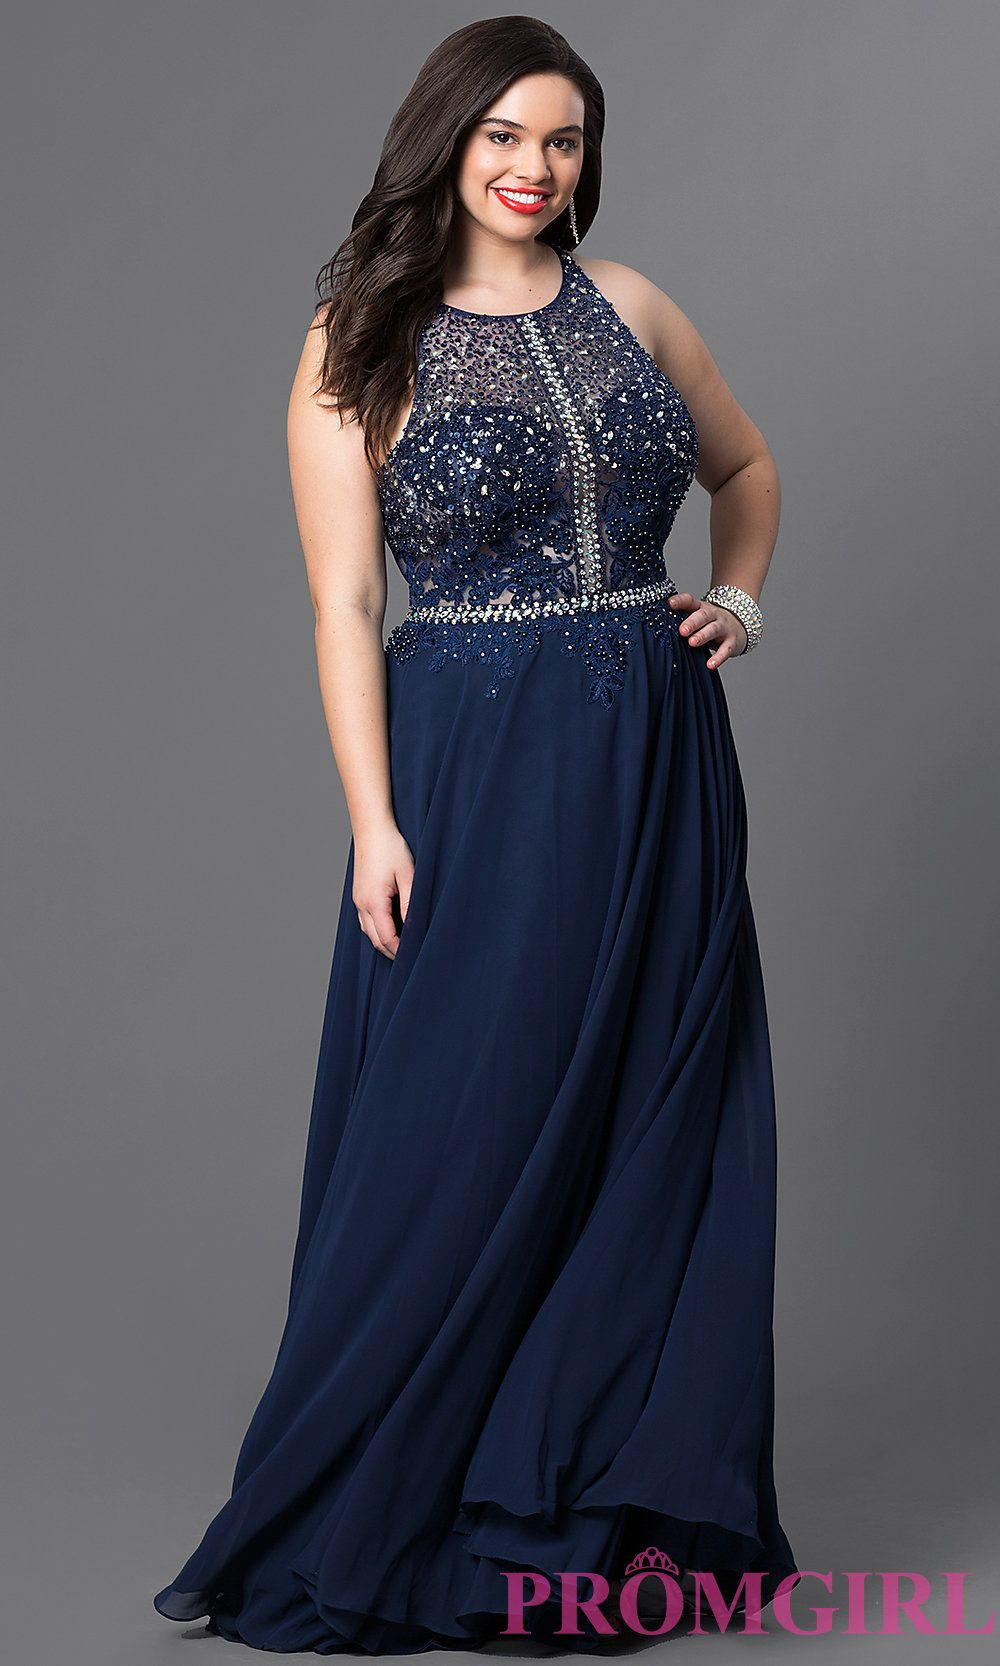 72982aa9a1 Embellished sheer illusion sweetheart long racerback prom dress available  in plus sizes. Style  DQ-9283Pn